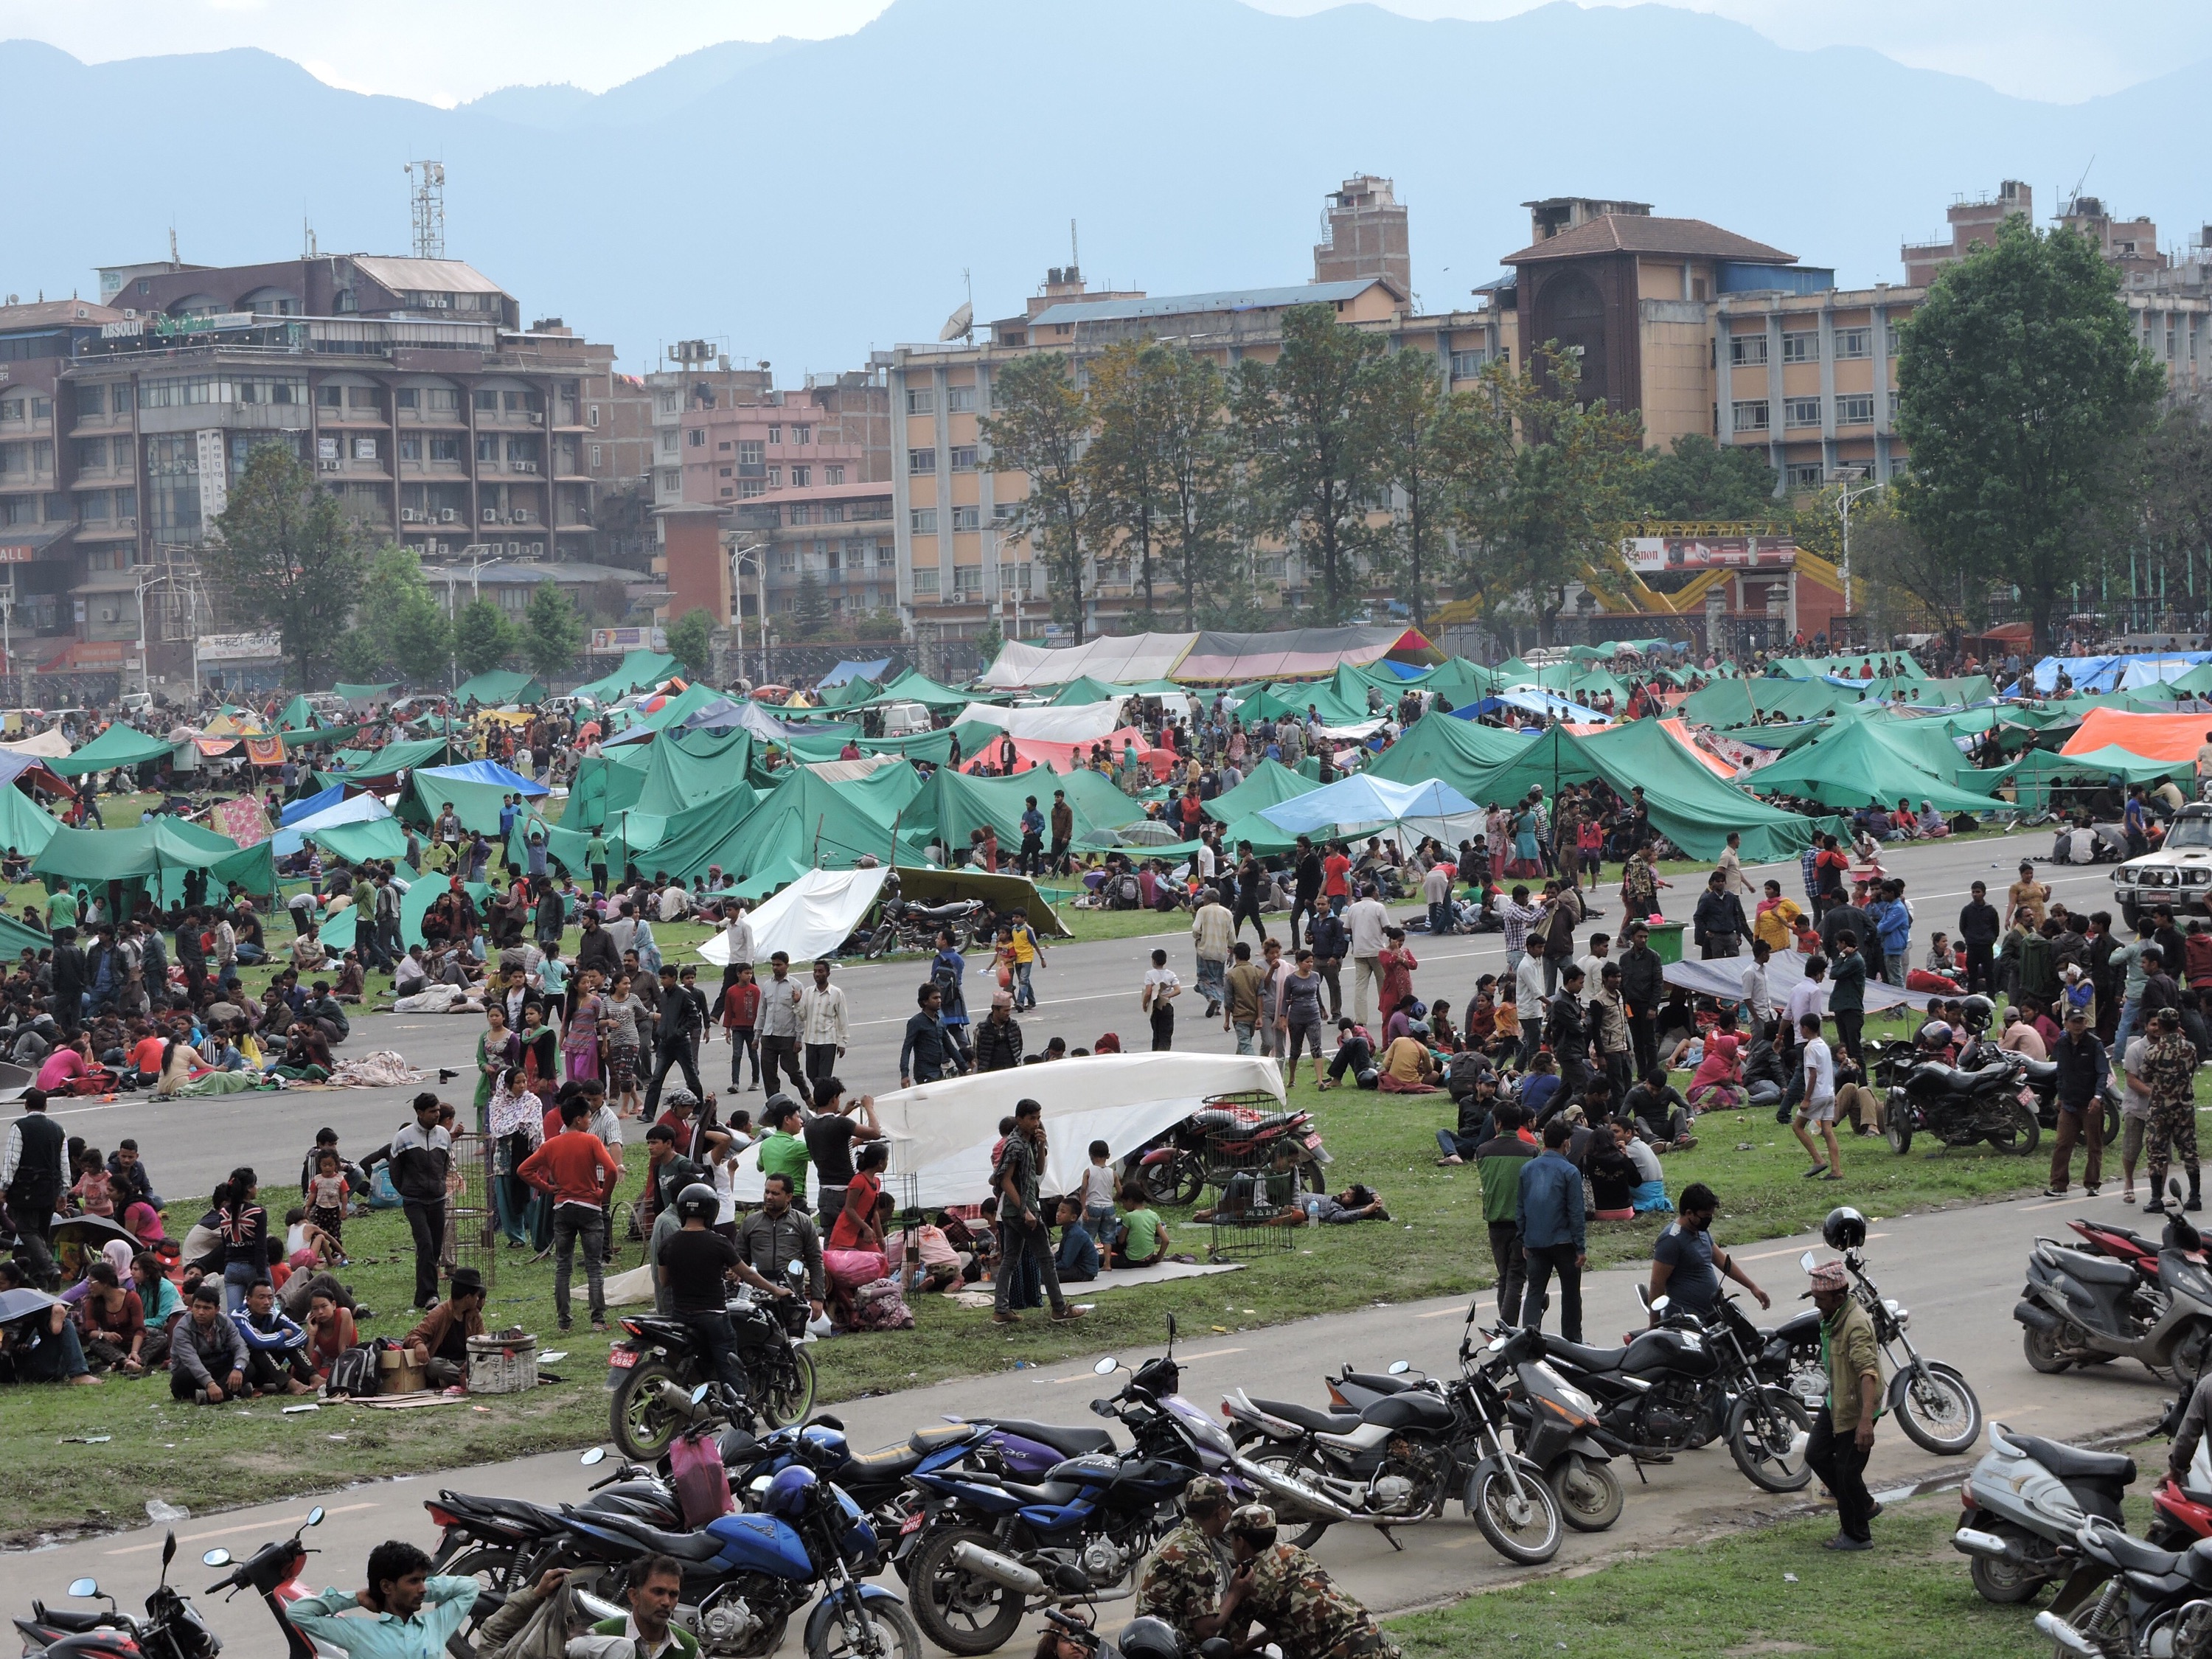 Displaced families gather in an open field following the earthquake in Nepal.